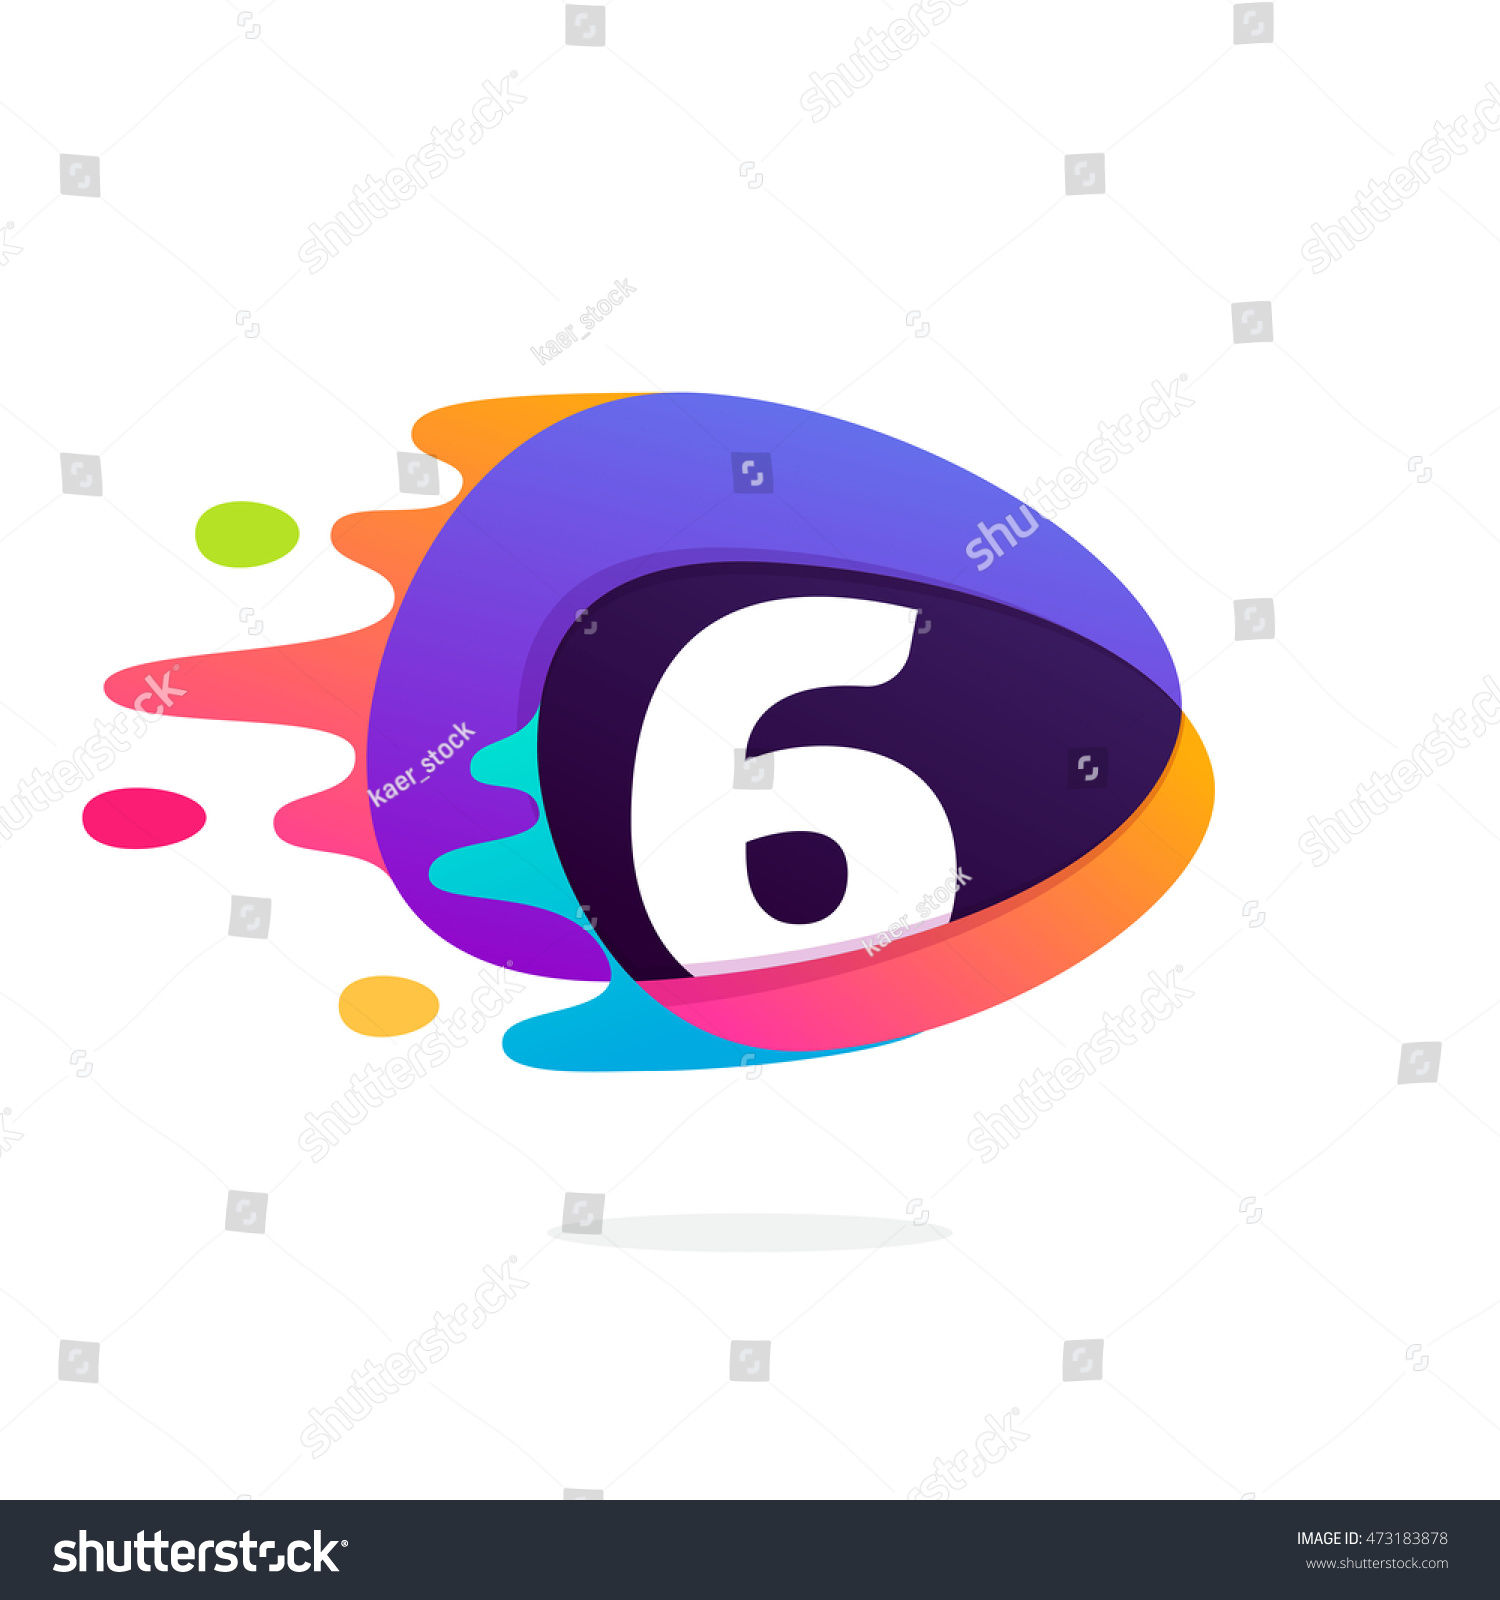 Number six logo triangle intersection icon stock vector 473183878 number six logo in triangle intersection icon with fast speed lines multicolor vector for application buycottarizona Images